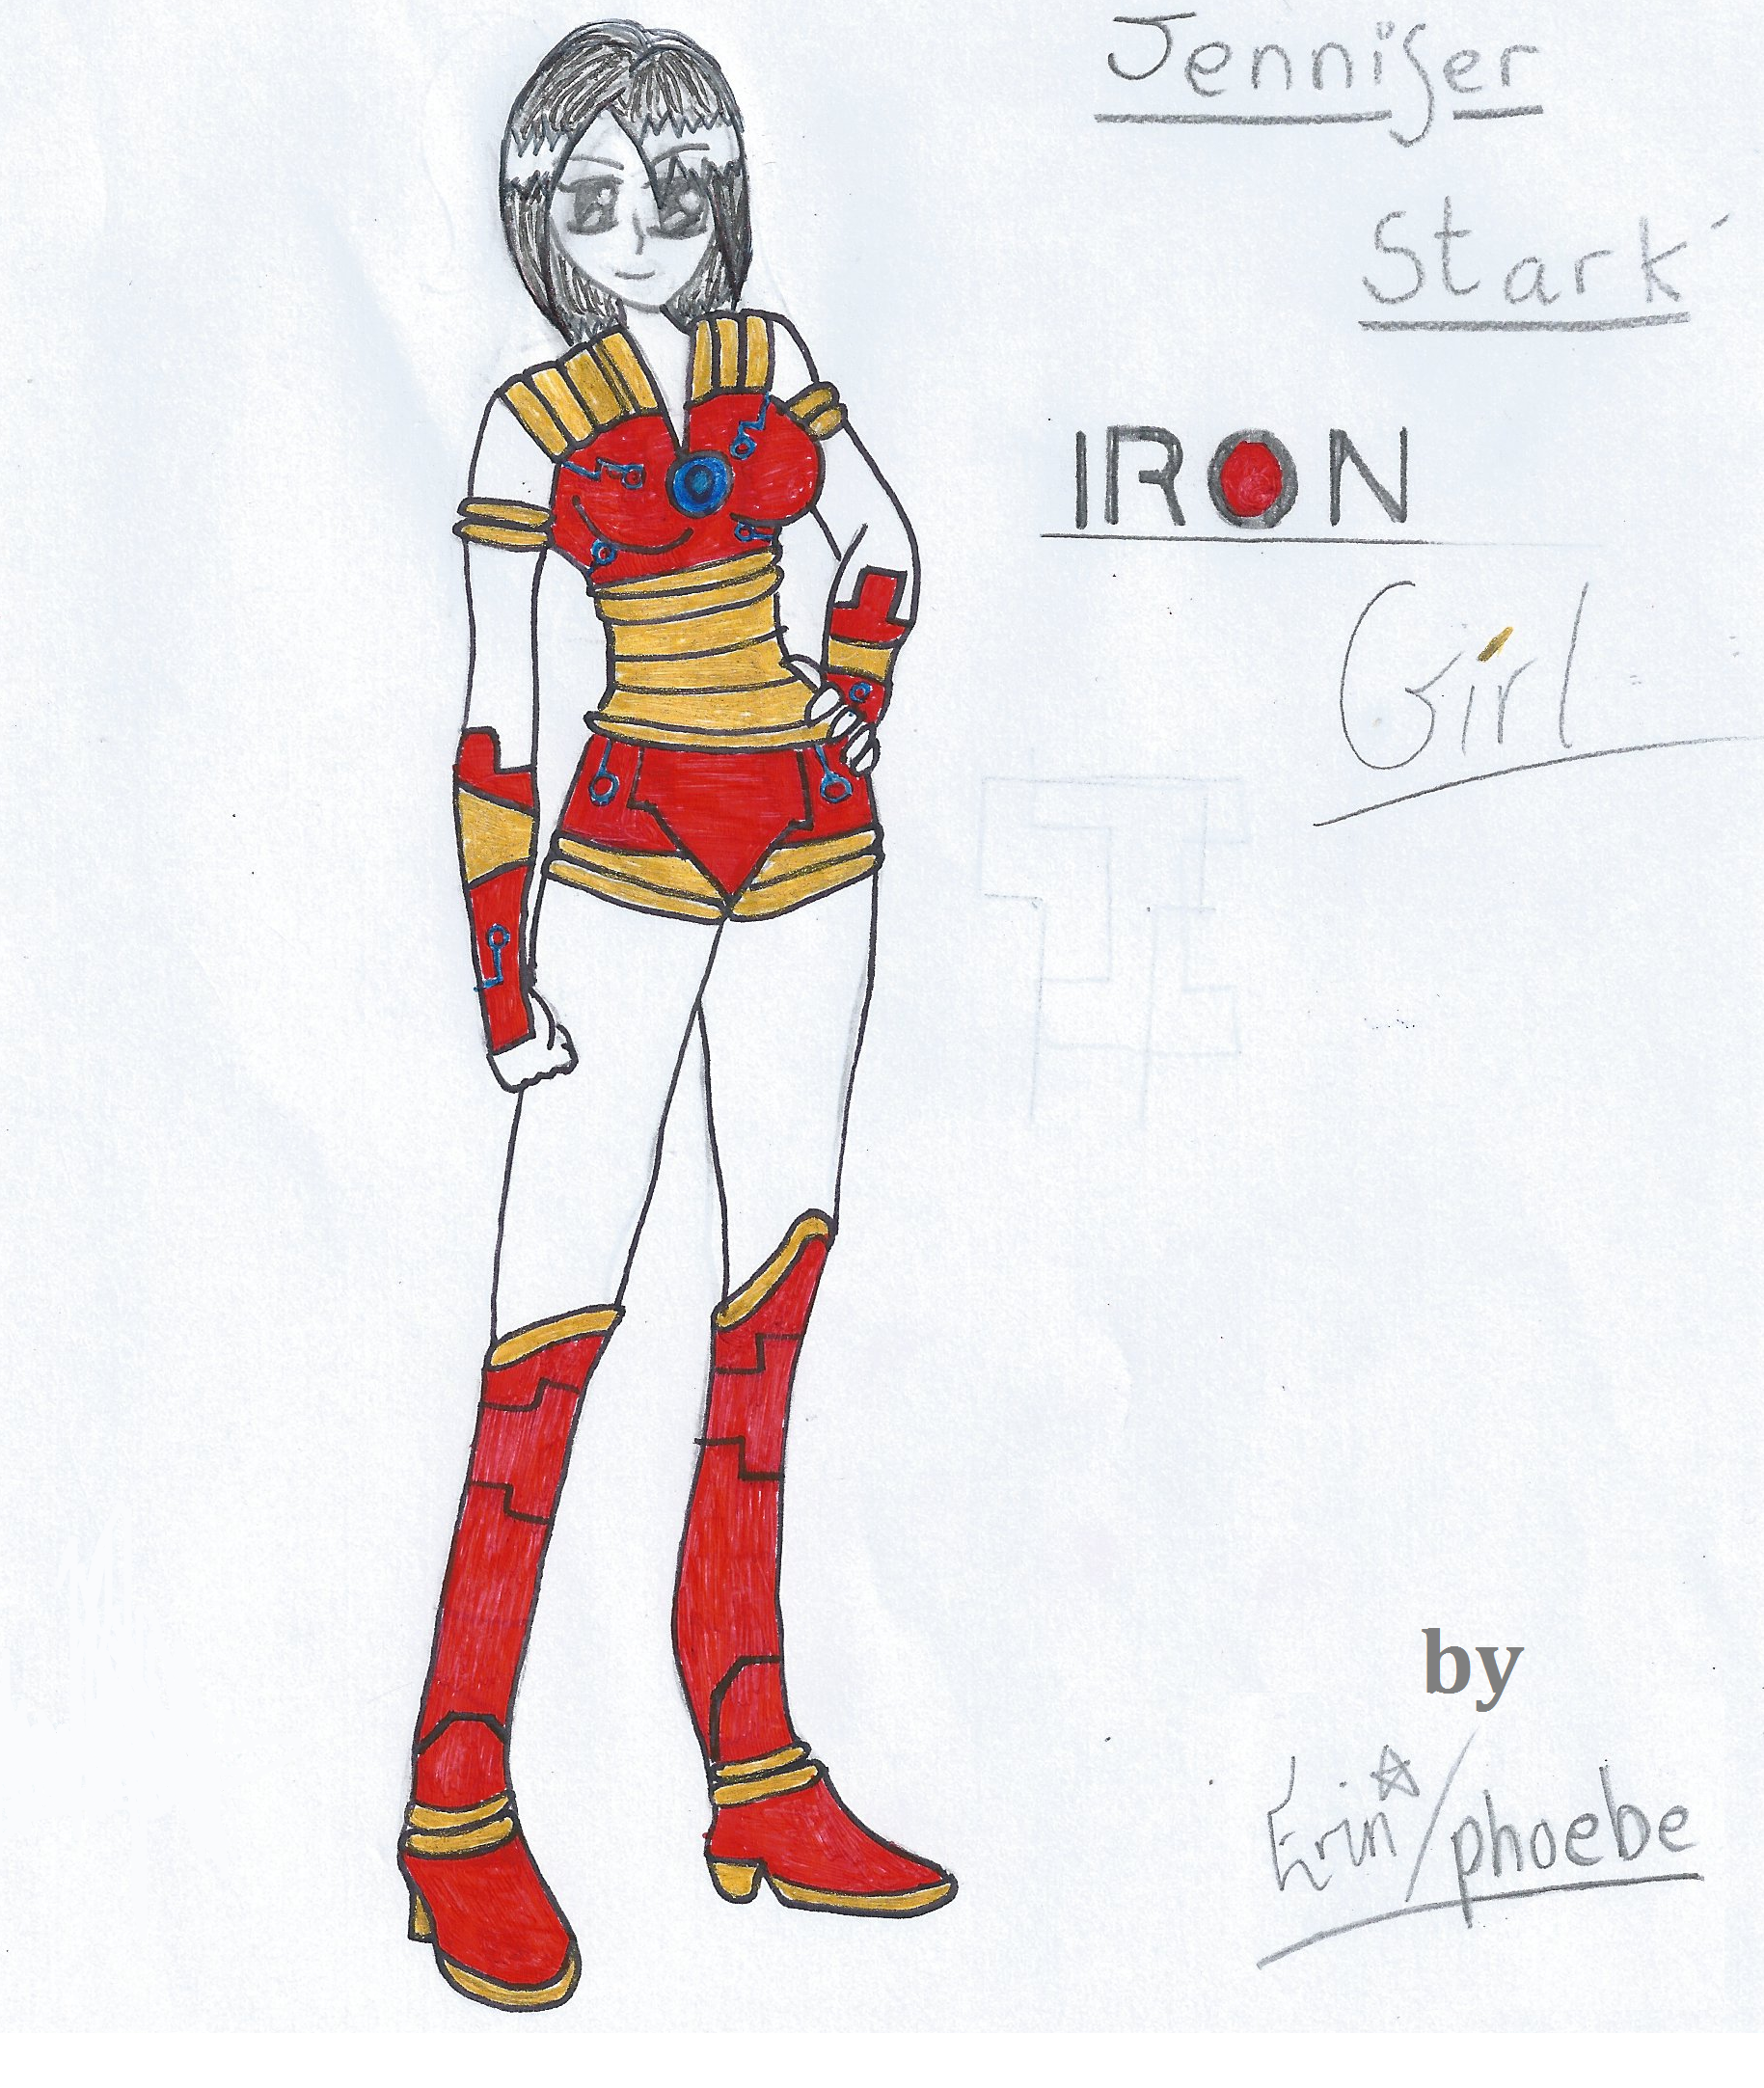 My new OC Iron Girl/Jennifer Stark